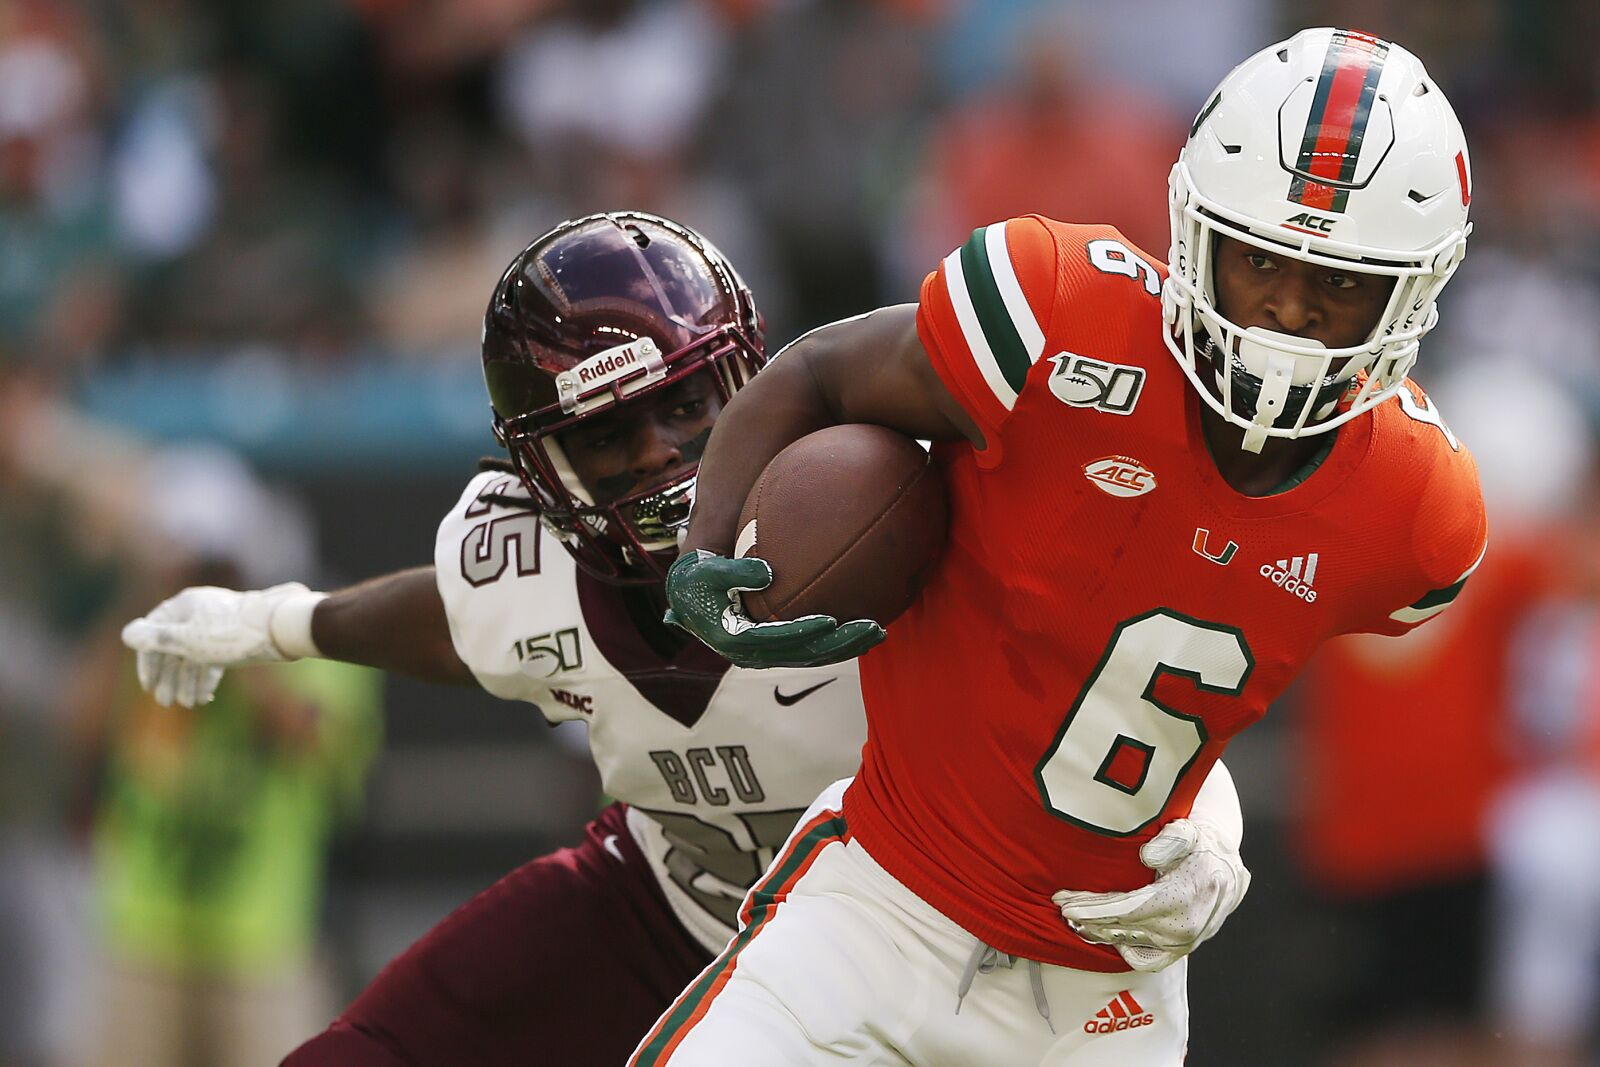 Miami football sees explosiveness needed from Mark Pope